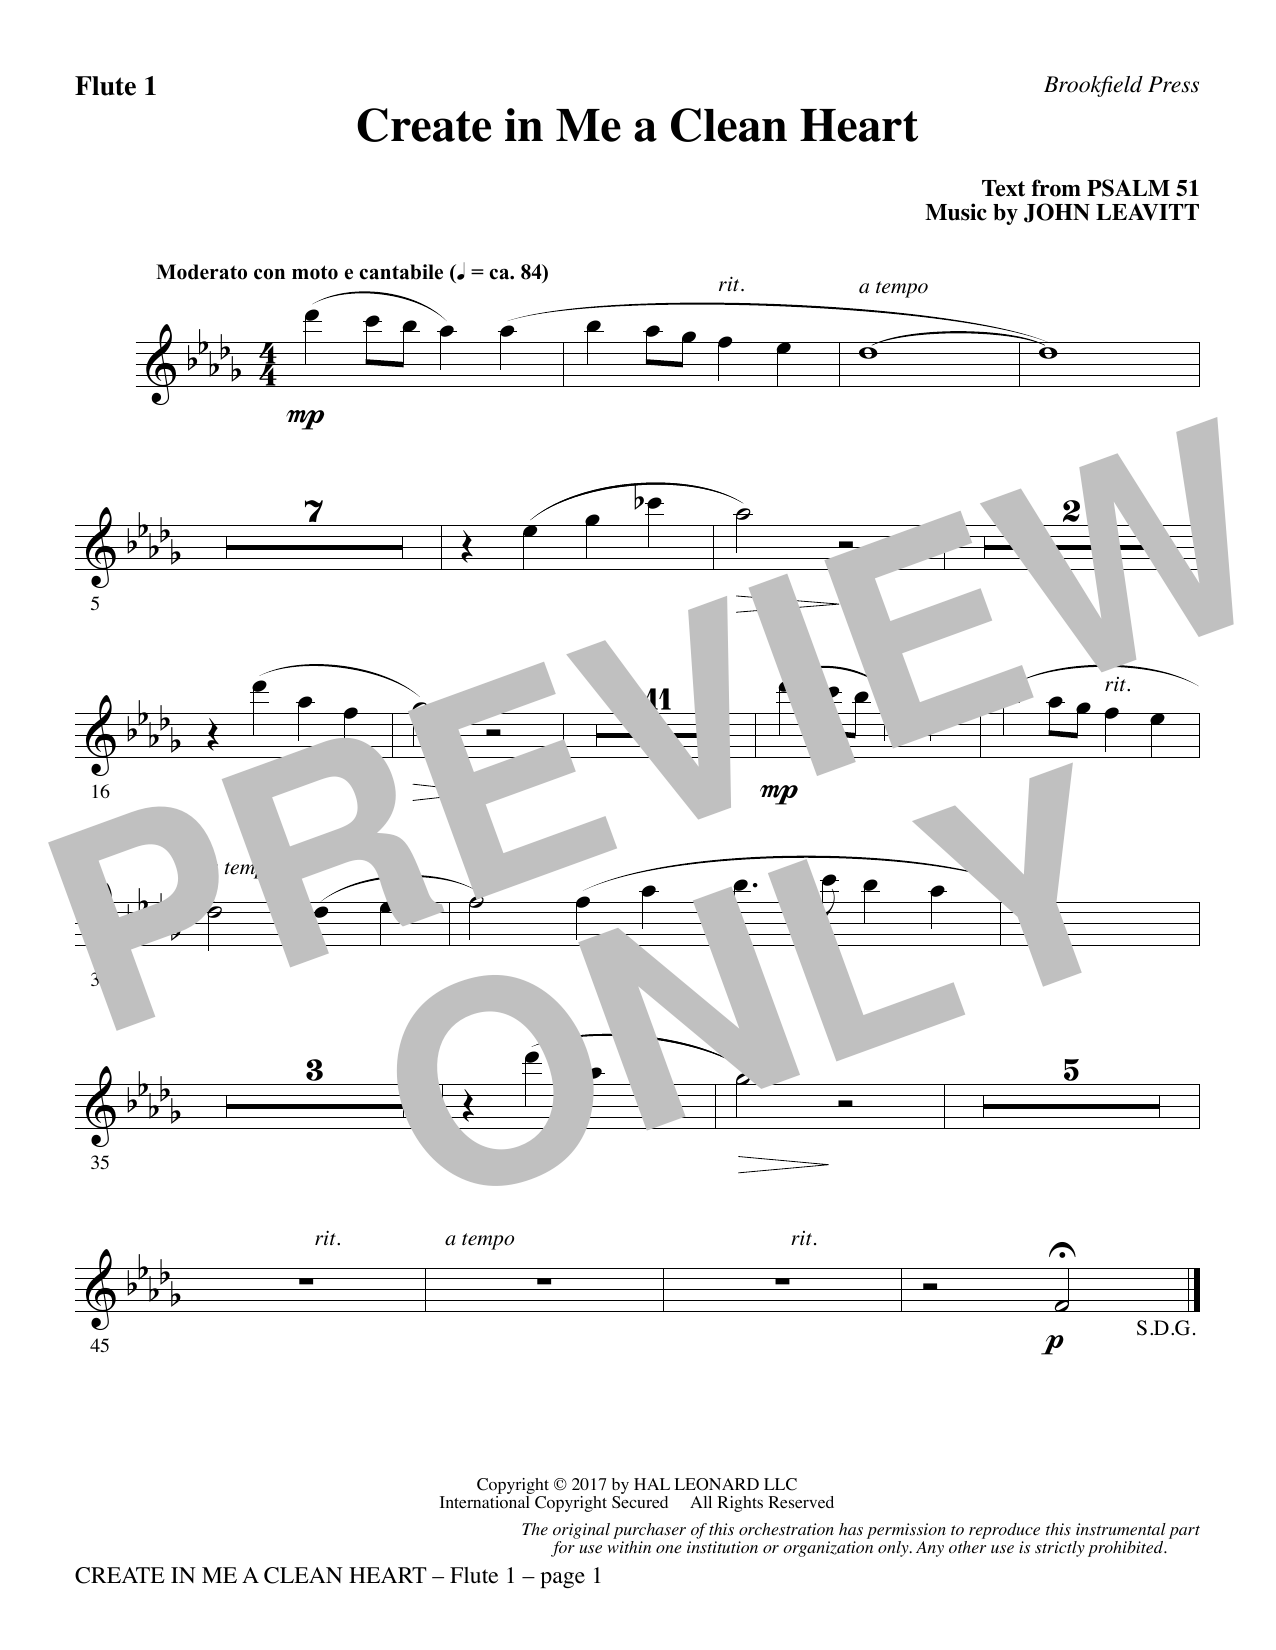 John Leavitt Create in Me a Clean Heart - Flute 1 sheet music notes and chords. Download Printable PDF.